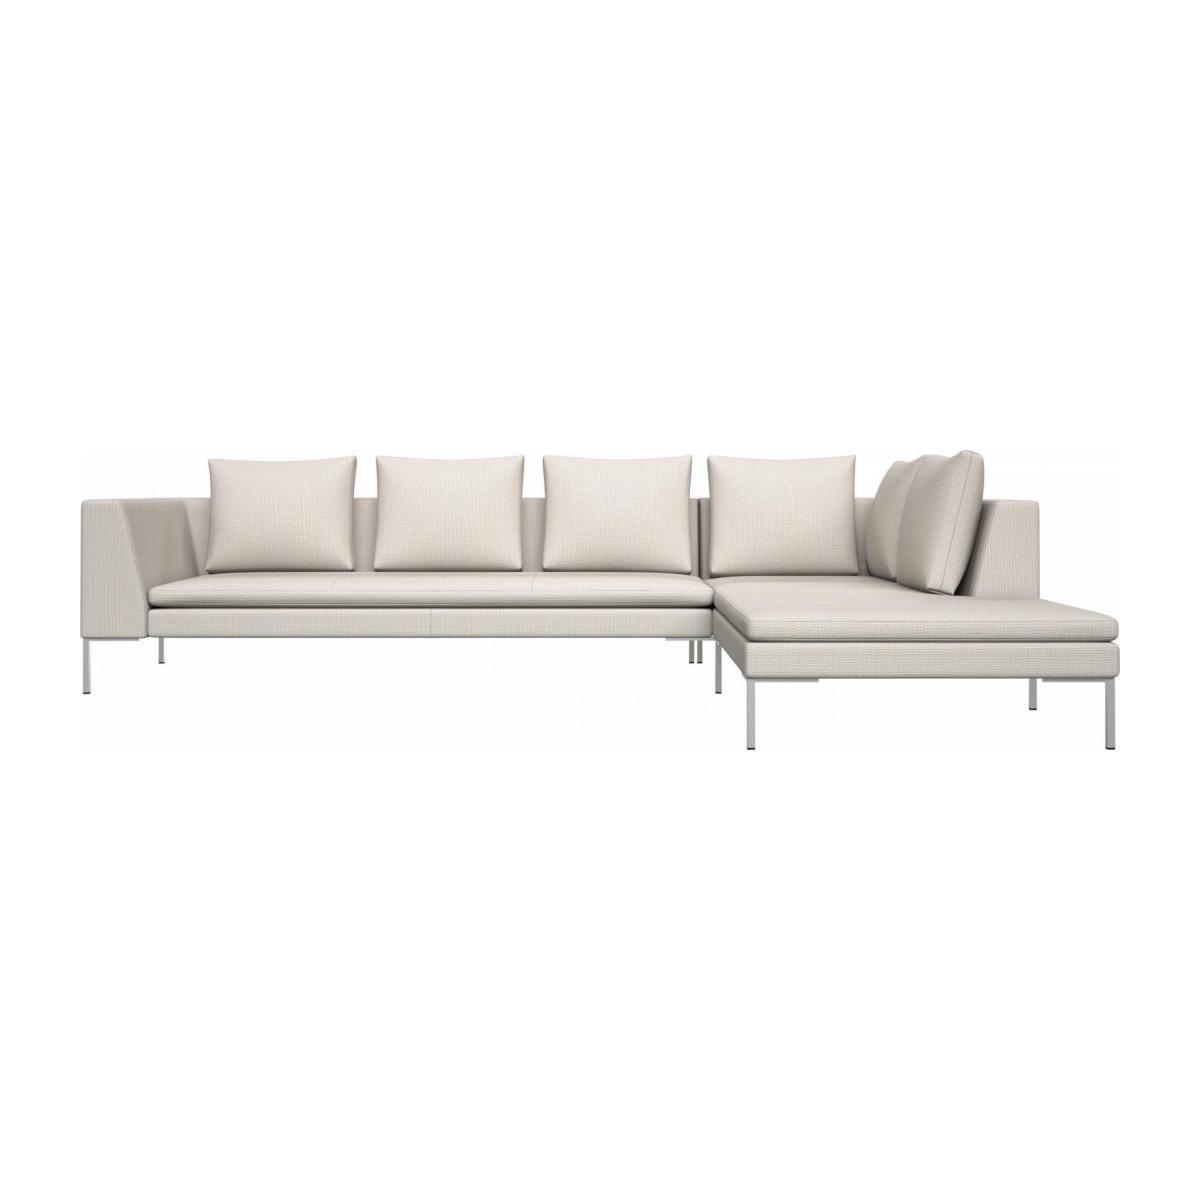 3 seater sofa with chaise longue on the right in Fasoli fabric, snow white  n°1